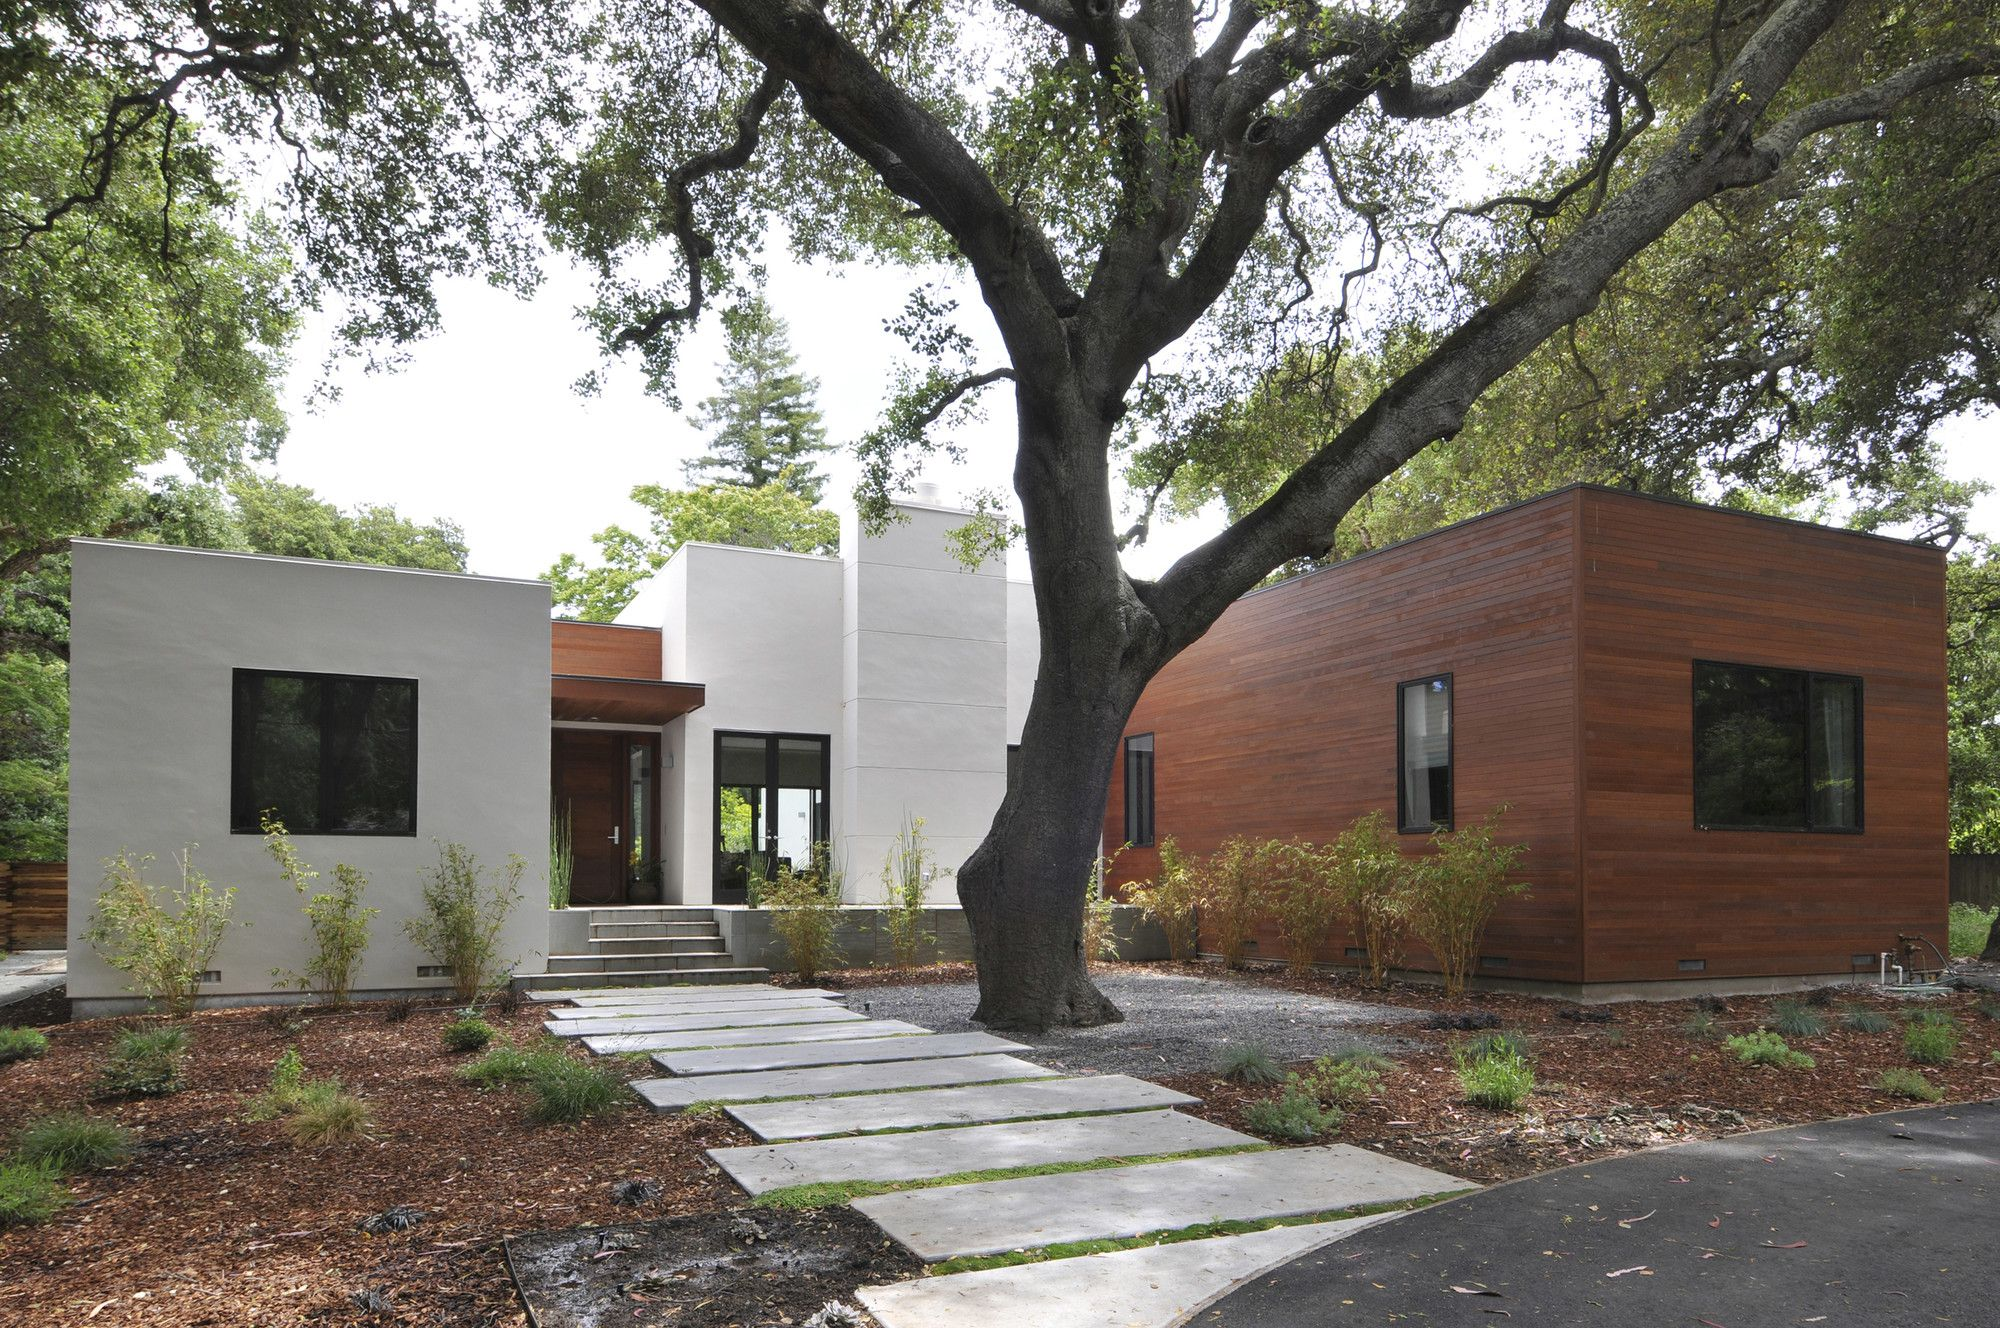 Residencia en menlo oaks ana williamson architect for Casa minimalista granada